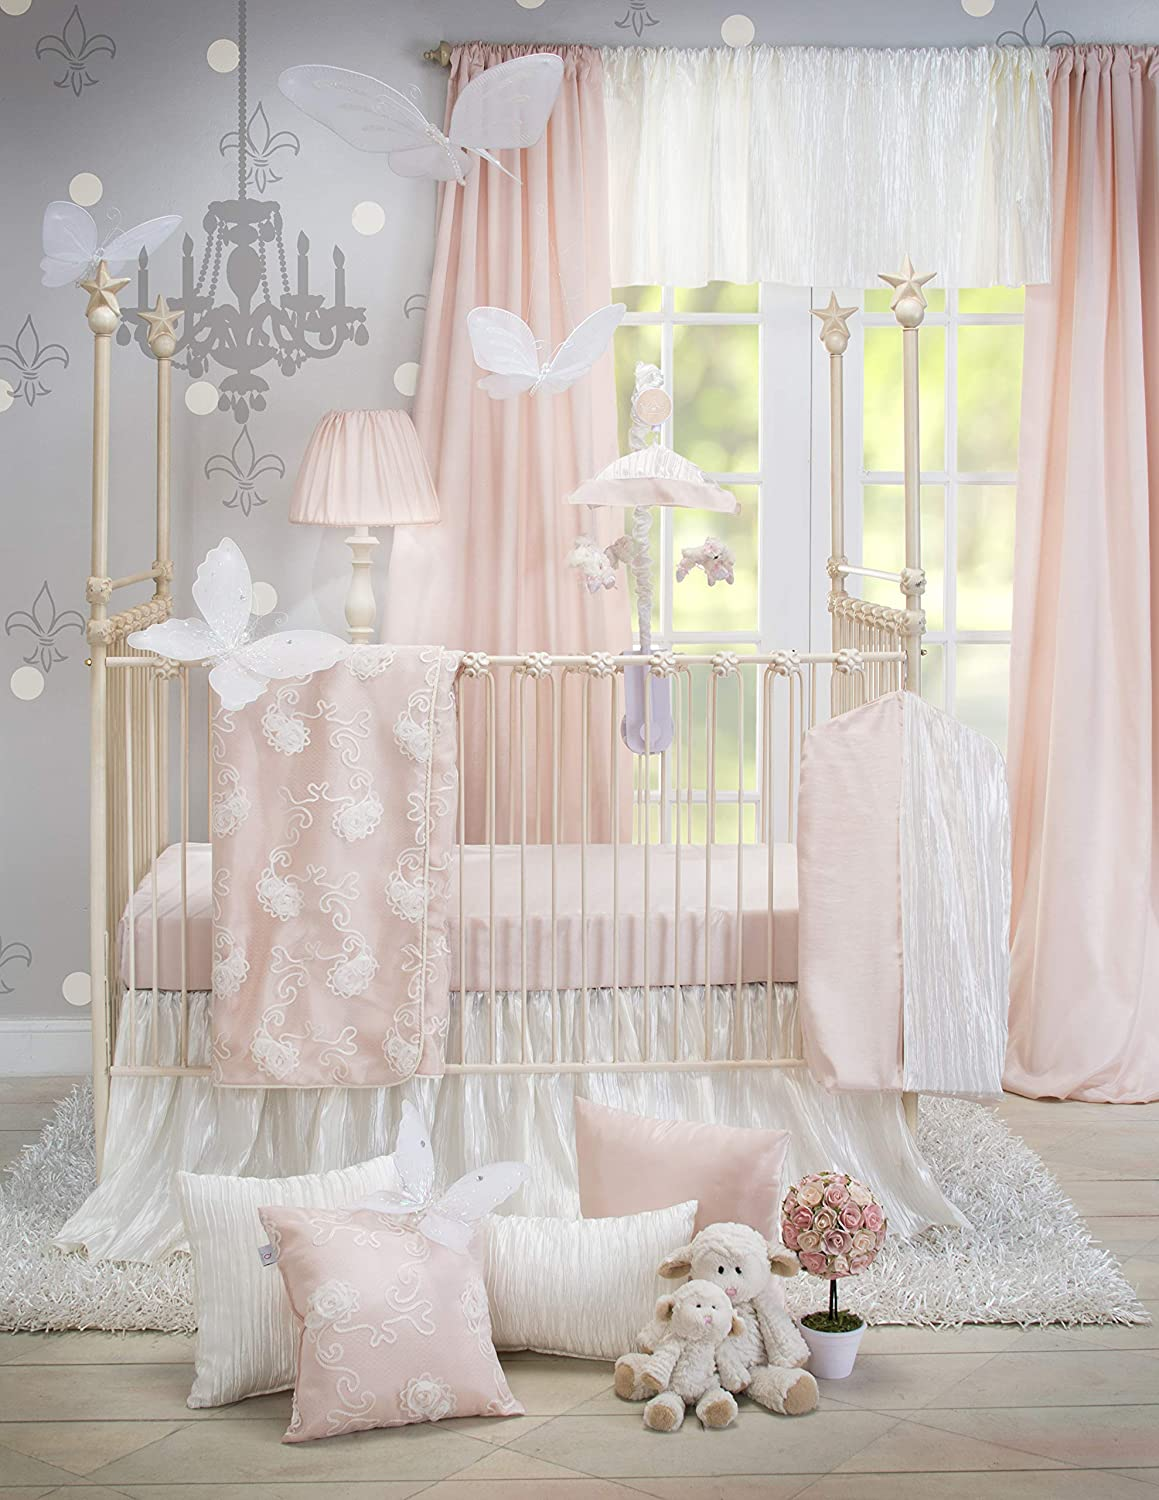 Crib Bedding Set Lil Princess by Glenna Jean | Baby Girl Nursery + Hand  Crafted with Premium Quality Fabrics | Includes Quilt, Sheet and Bed Skirt  ...